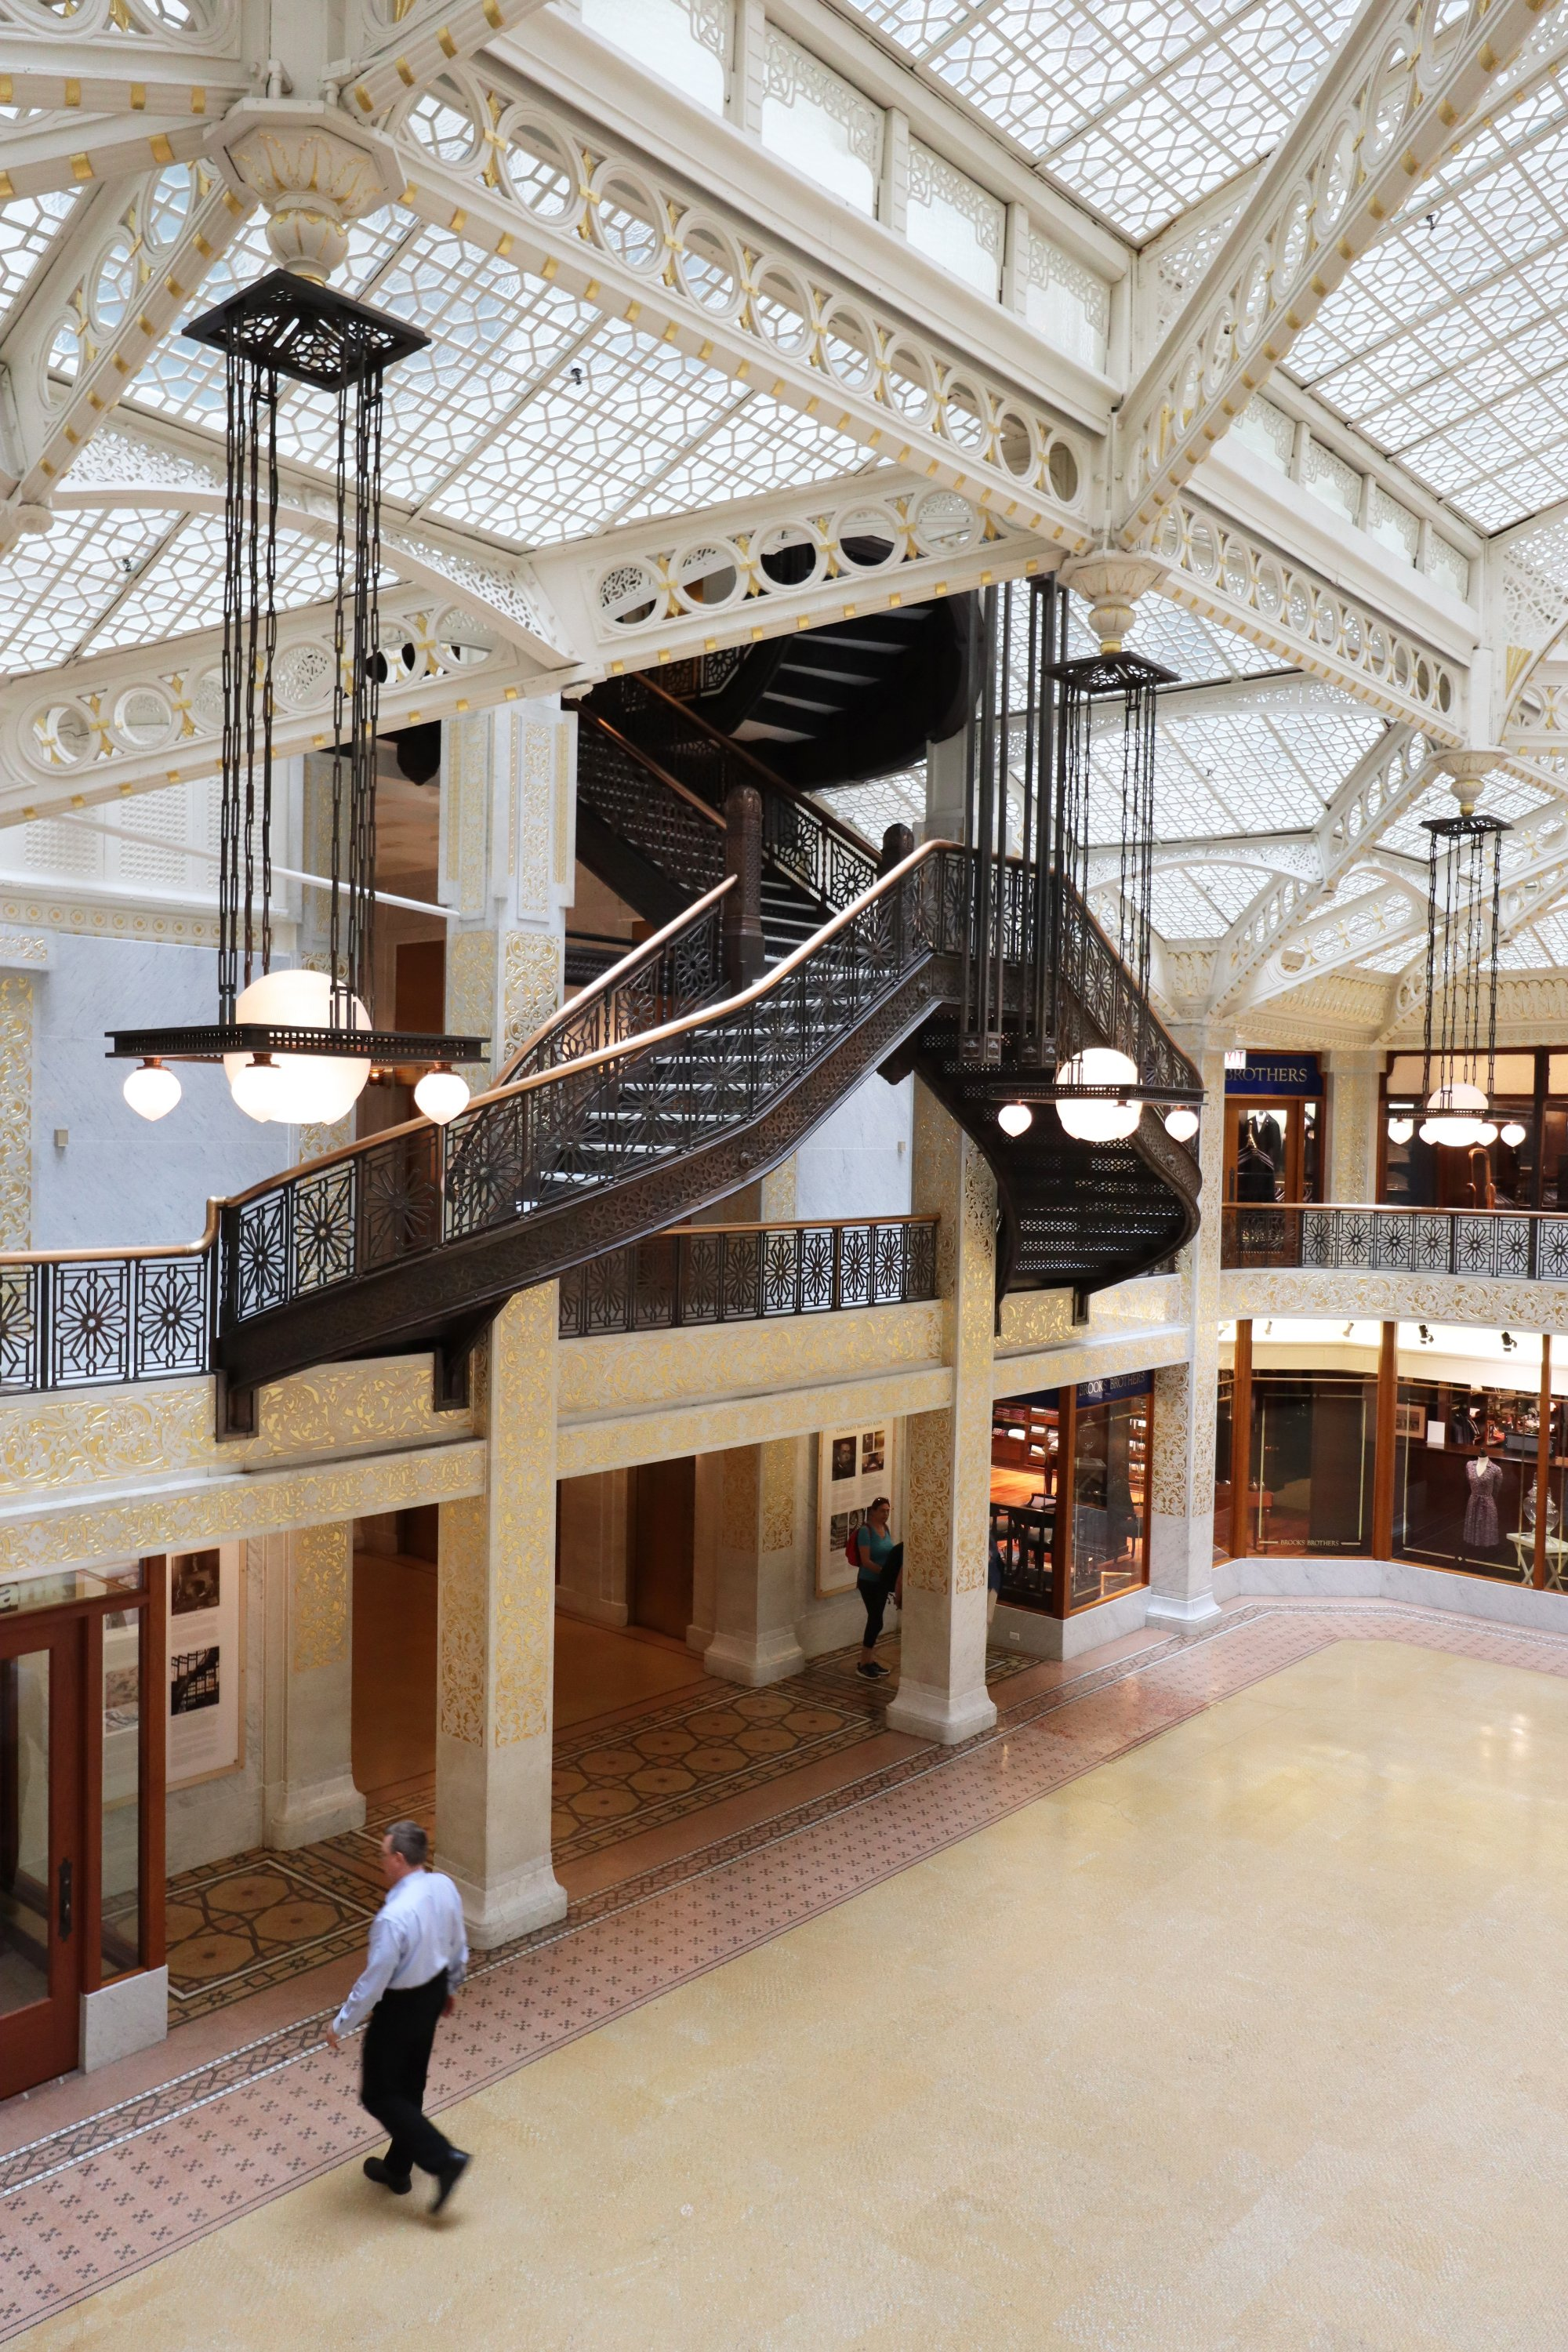 The Rookery Building in Chicago is home to the Frank Lloyd Wright Trust. (DPA Photo)